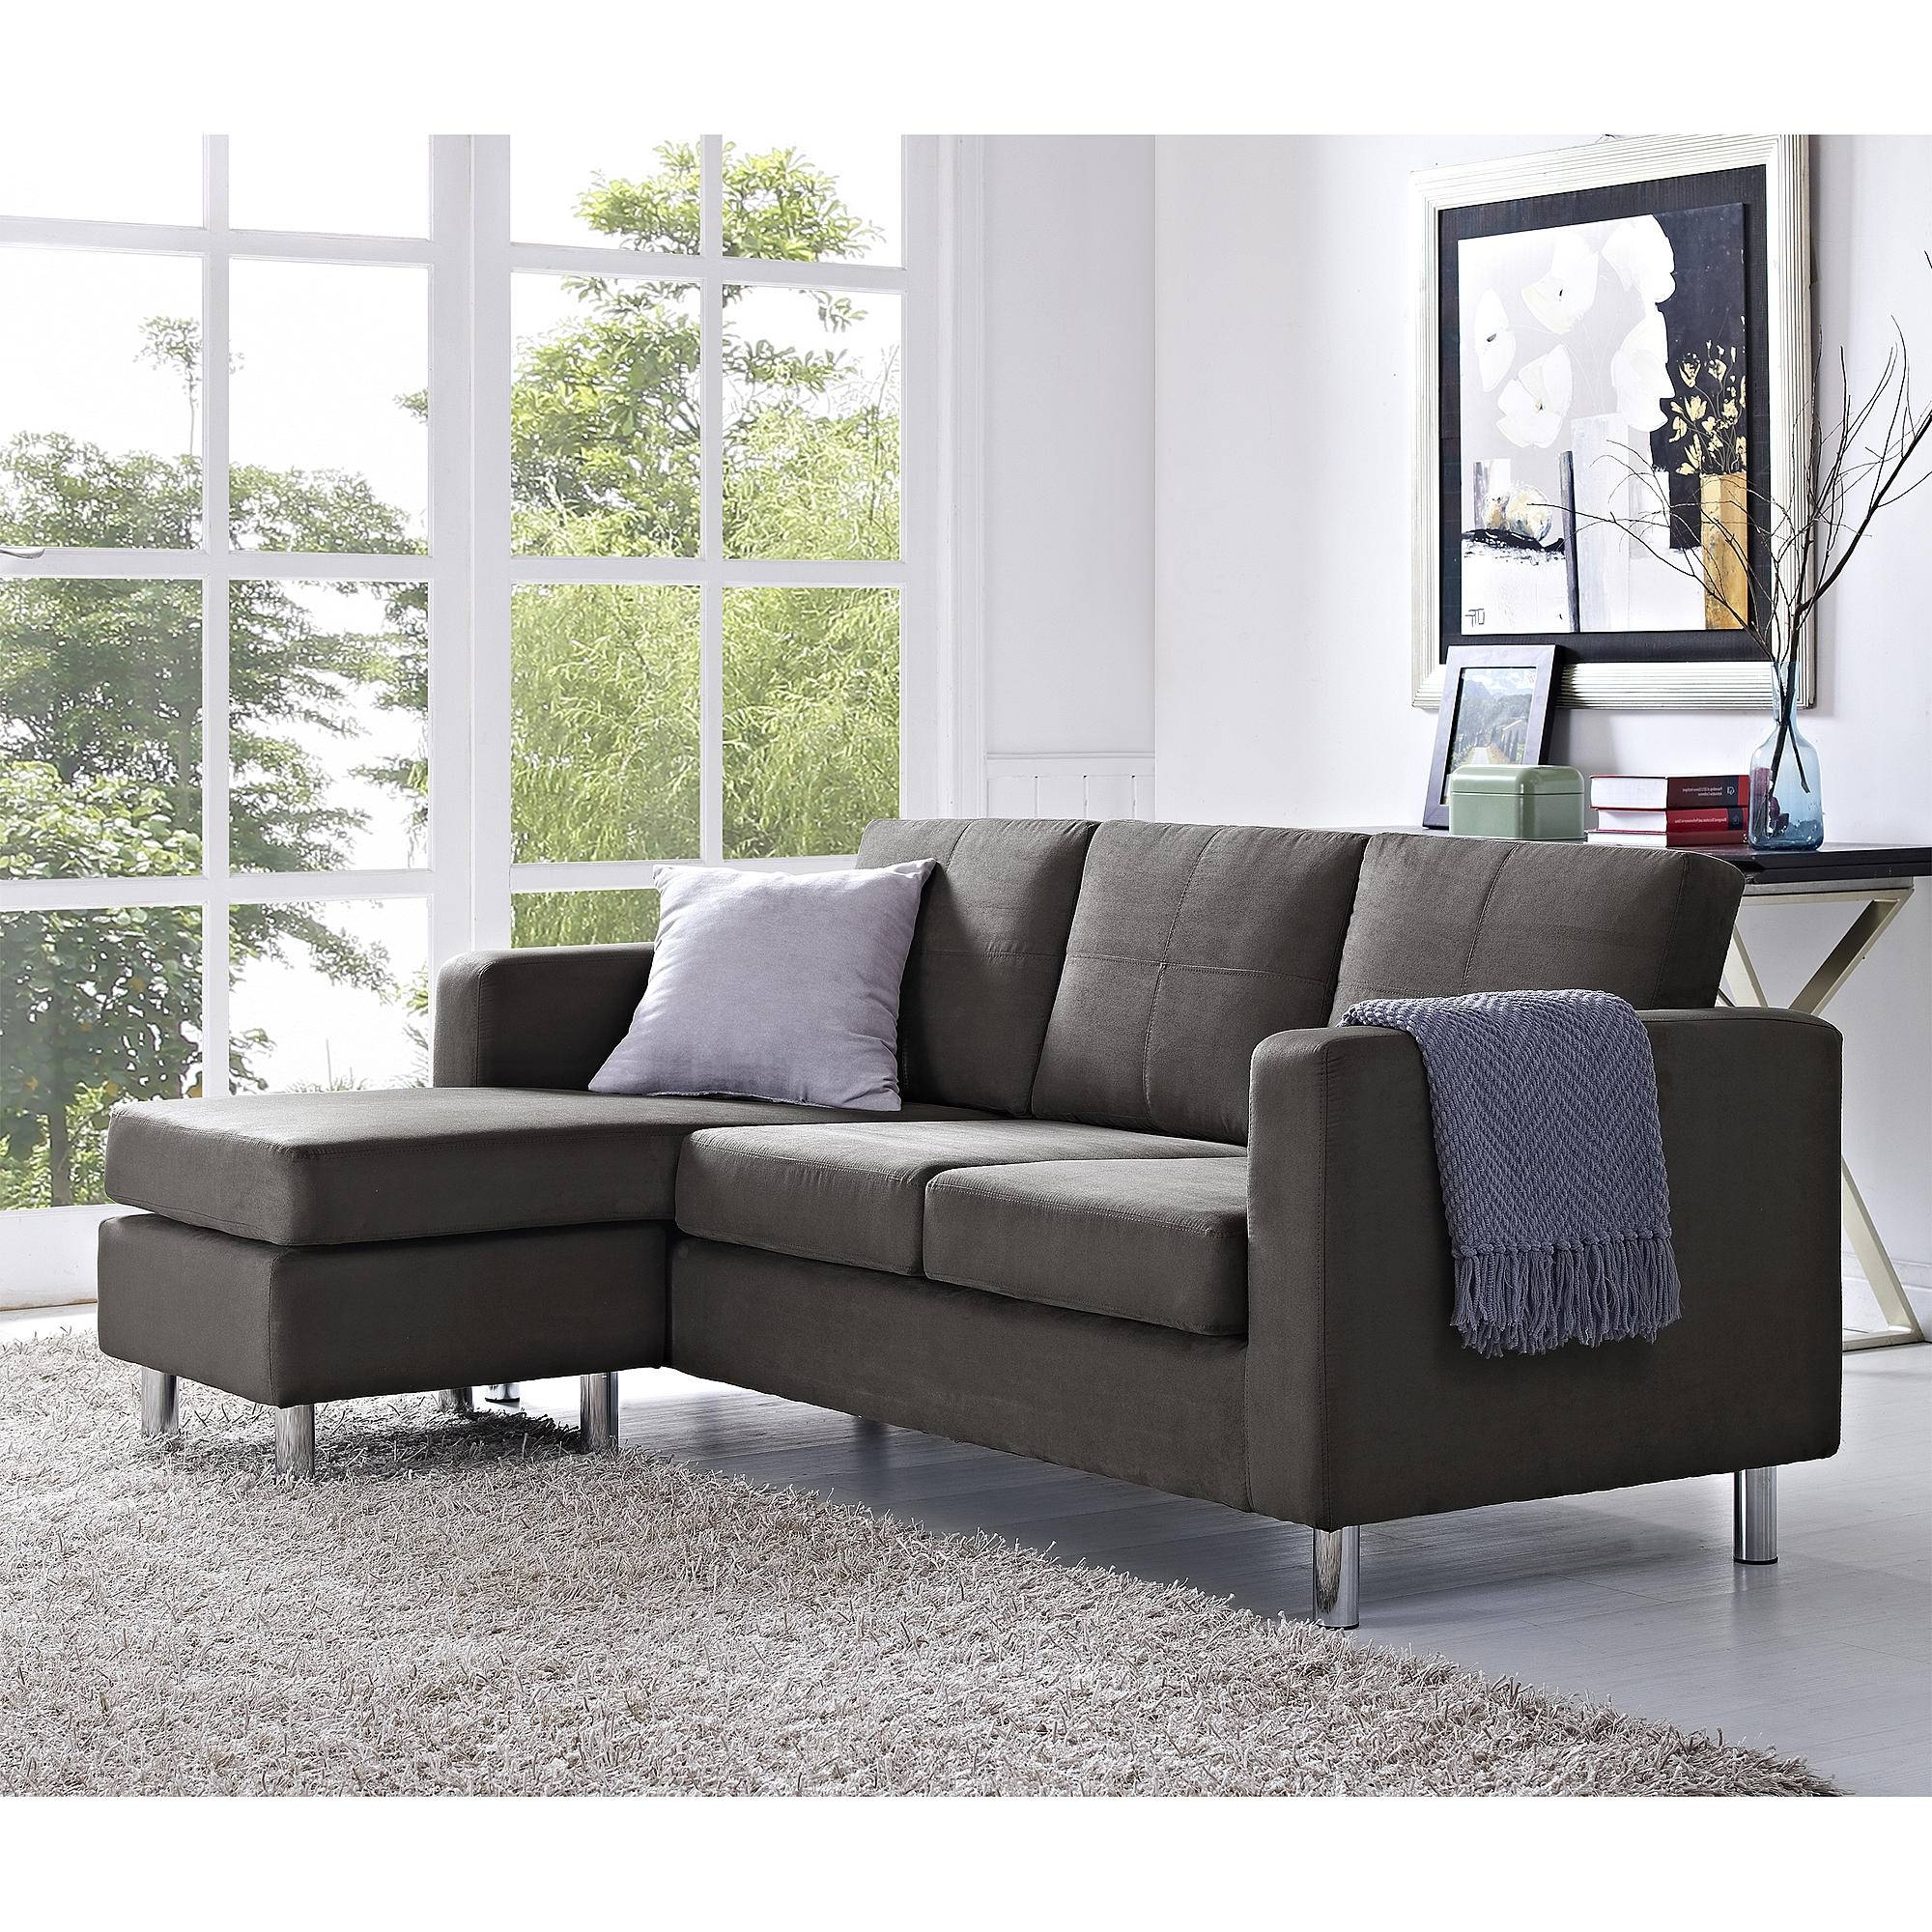 Small Spaces Configurable Sectional Sofa Including Collection With Regard To Small Spaces Configurable Sectional Sofas (View 3 of 15)